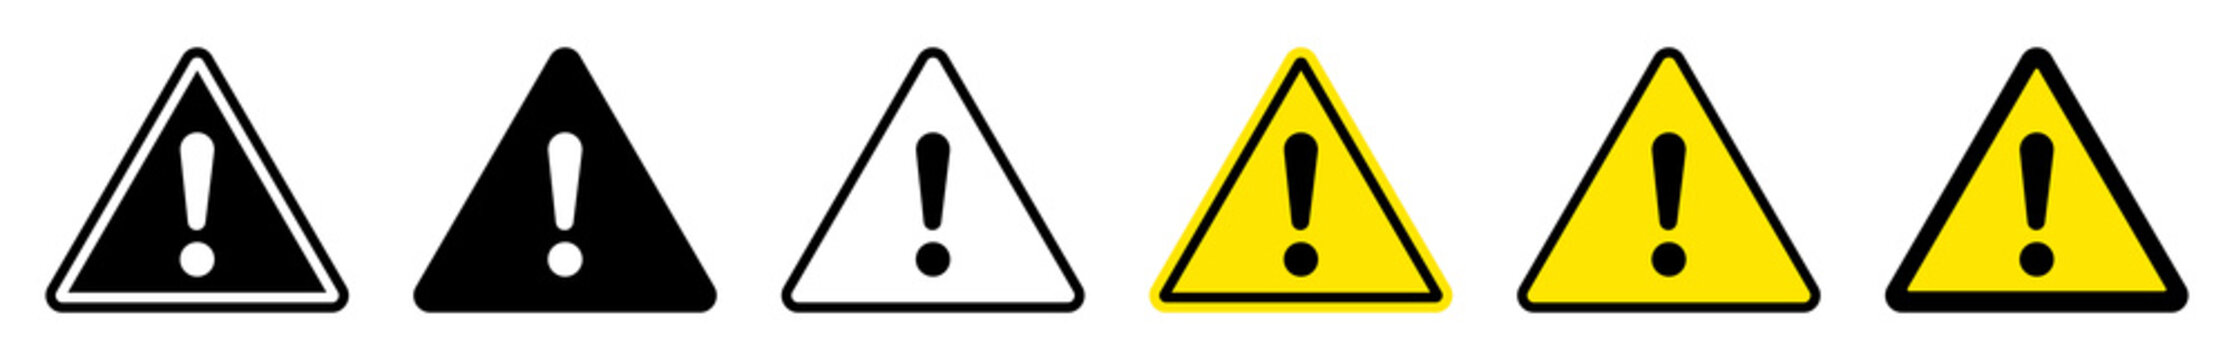 Exclamation mark of warning attention icon. Triangular warning symbols with Exclamation mark. Caution alarm set, danger sign collection, attention vector icon. Vector illustration.